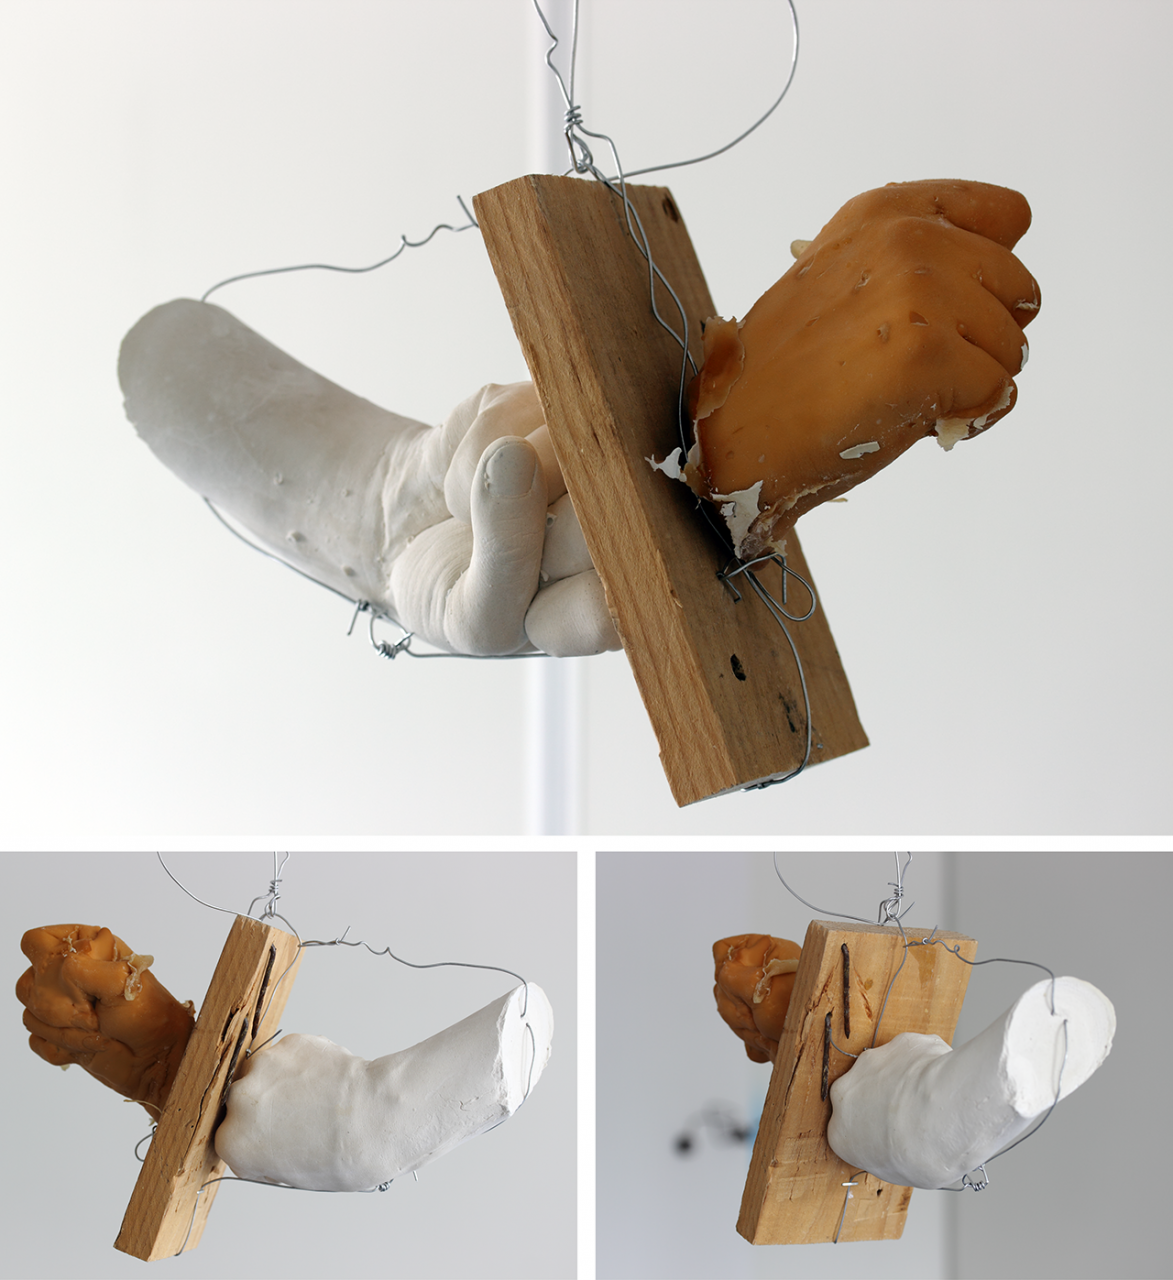 Totally wired 2014 approx 32 x 61 x 20cm body casts, latex, plaster, wood, nails, wire